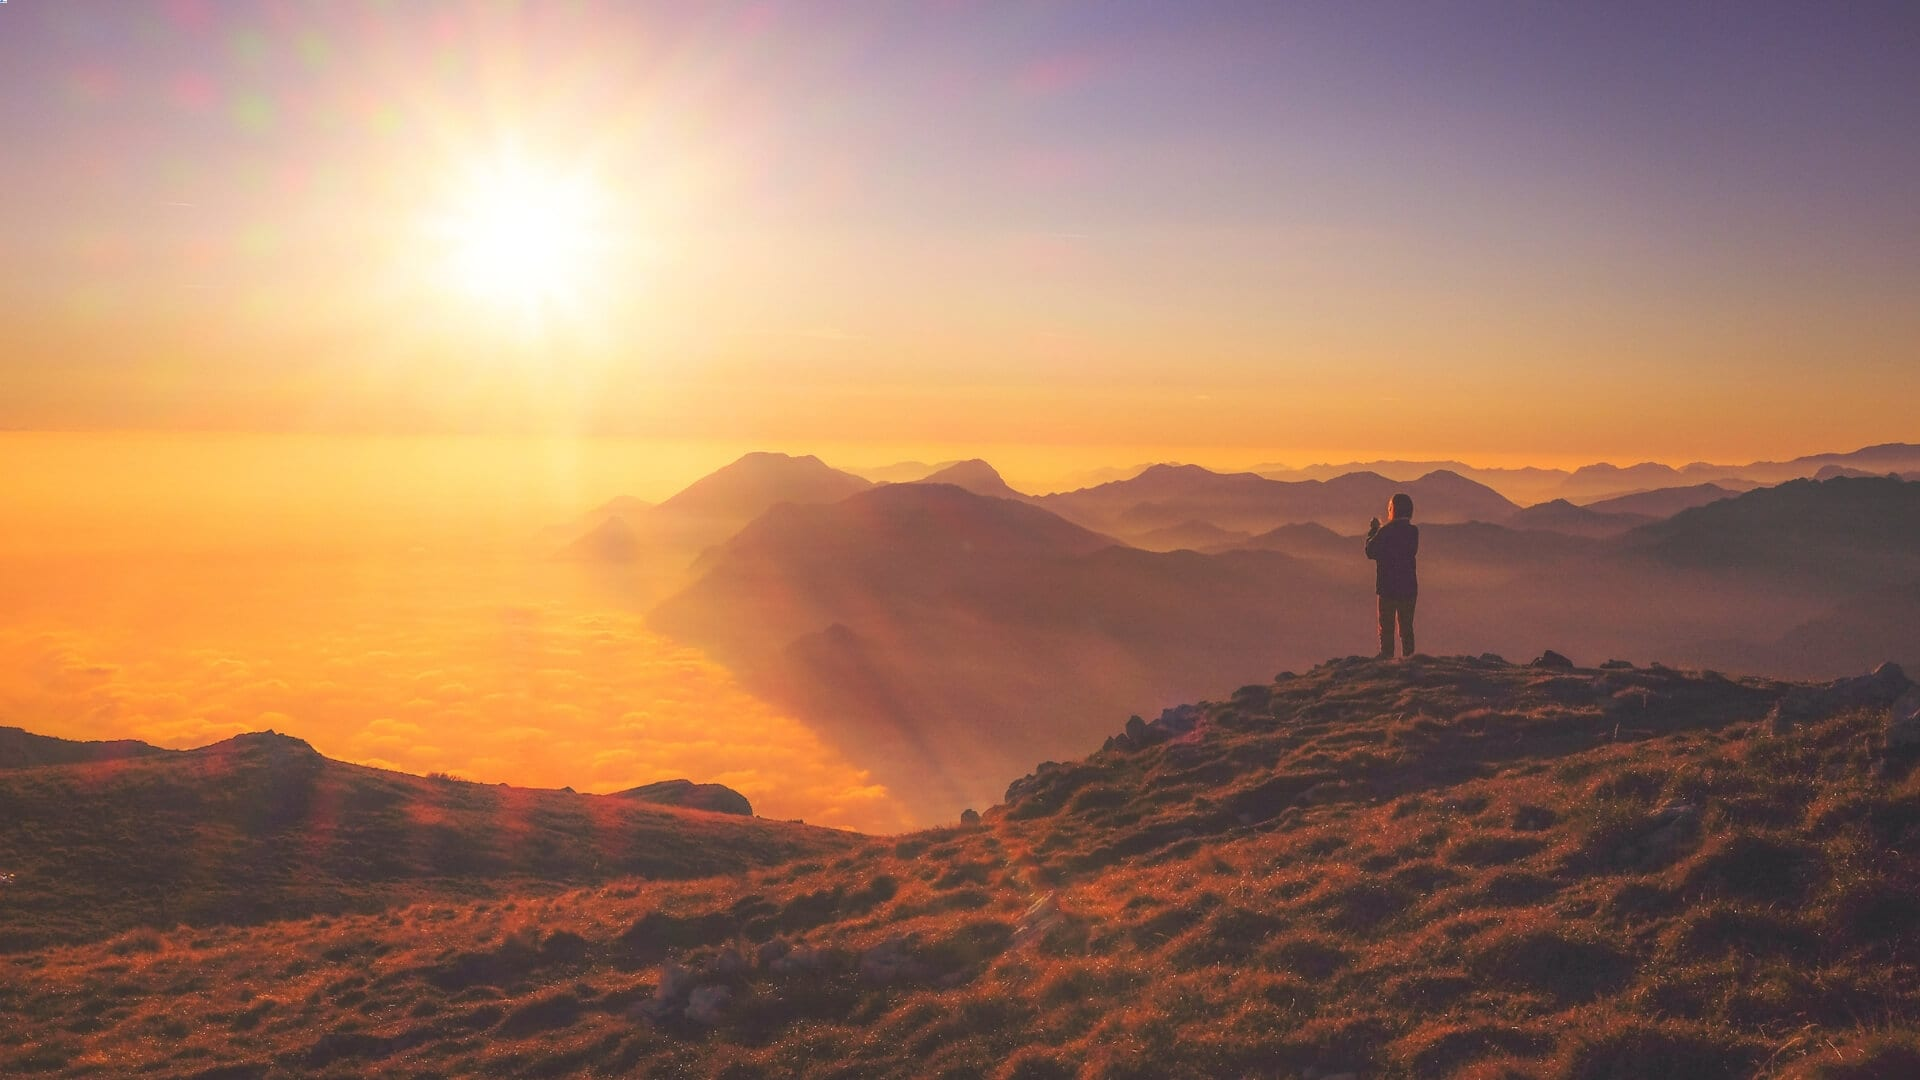 A person is standing on a mountain during sunrise in Asia.